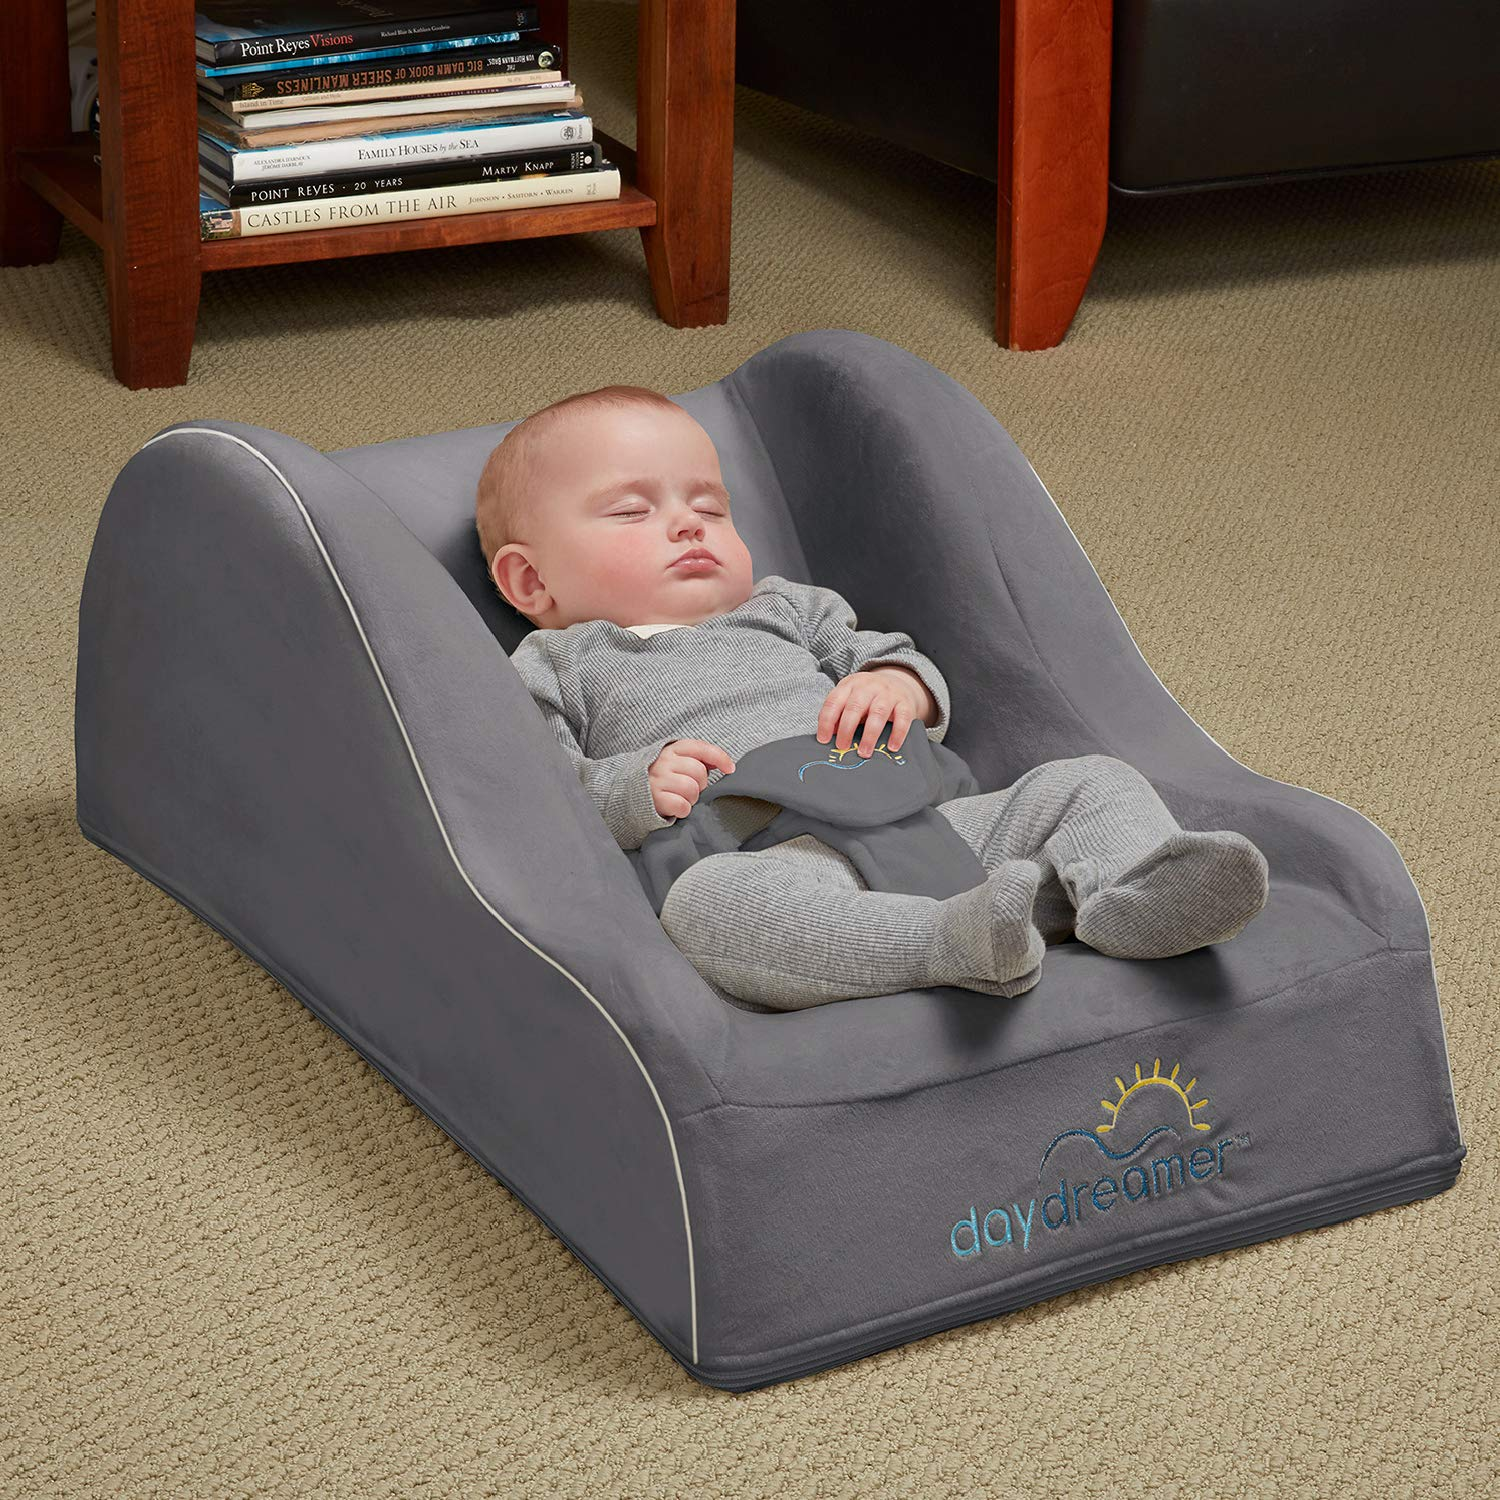 hiccapop Day Dreamer Sleeper Baby Lounger Seat for Infants - Travel Bed - Bassinet Alternative, Charcoal Gray by hiccapop (Image #1)